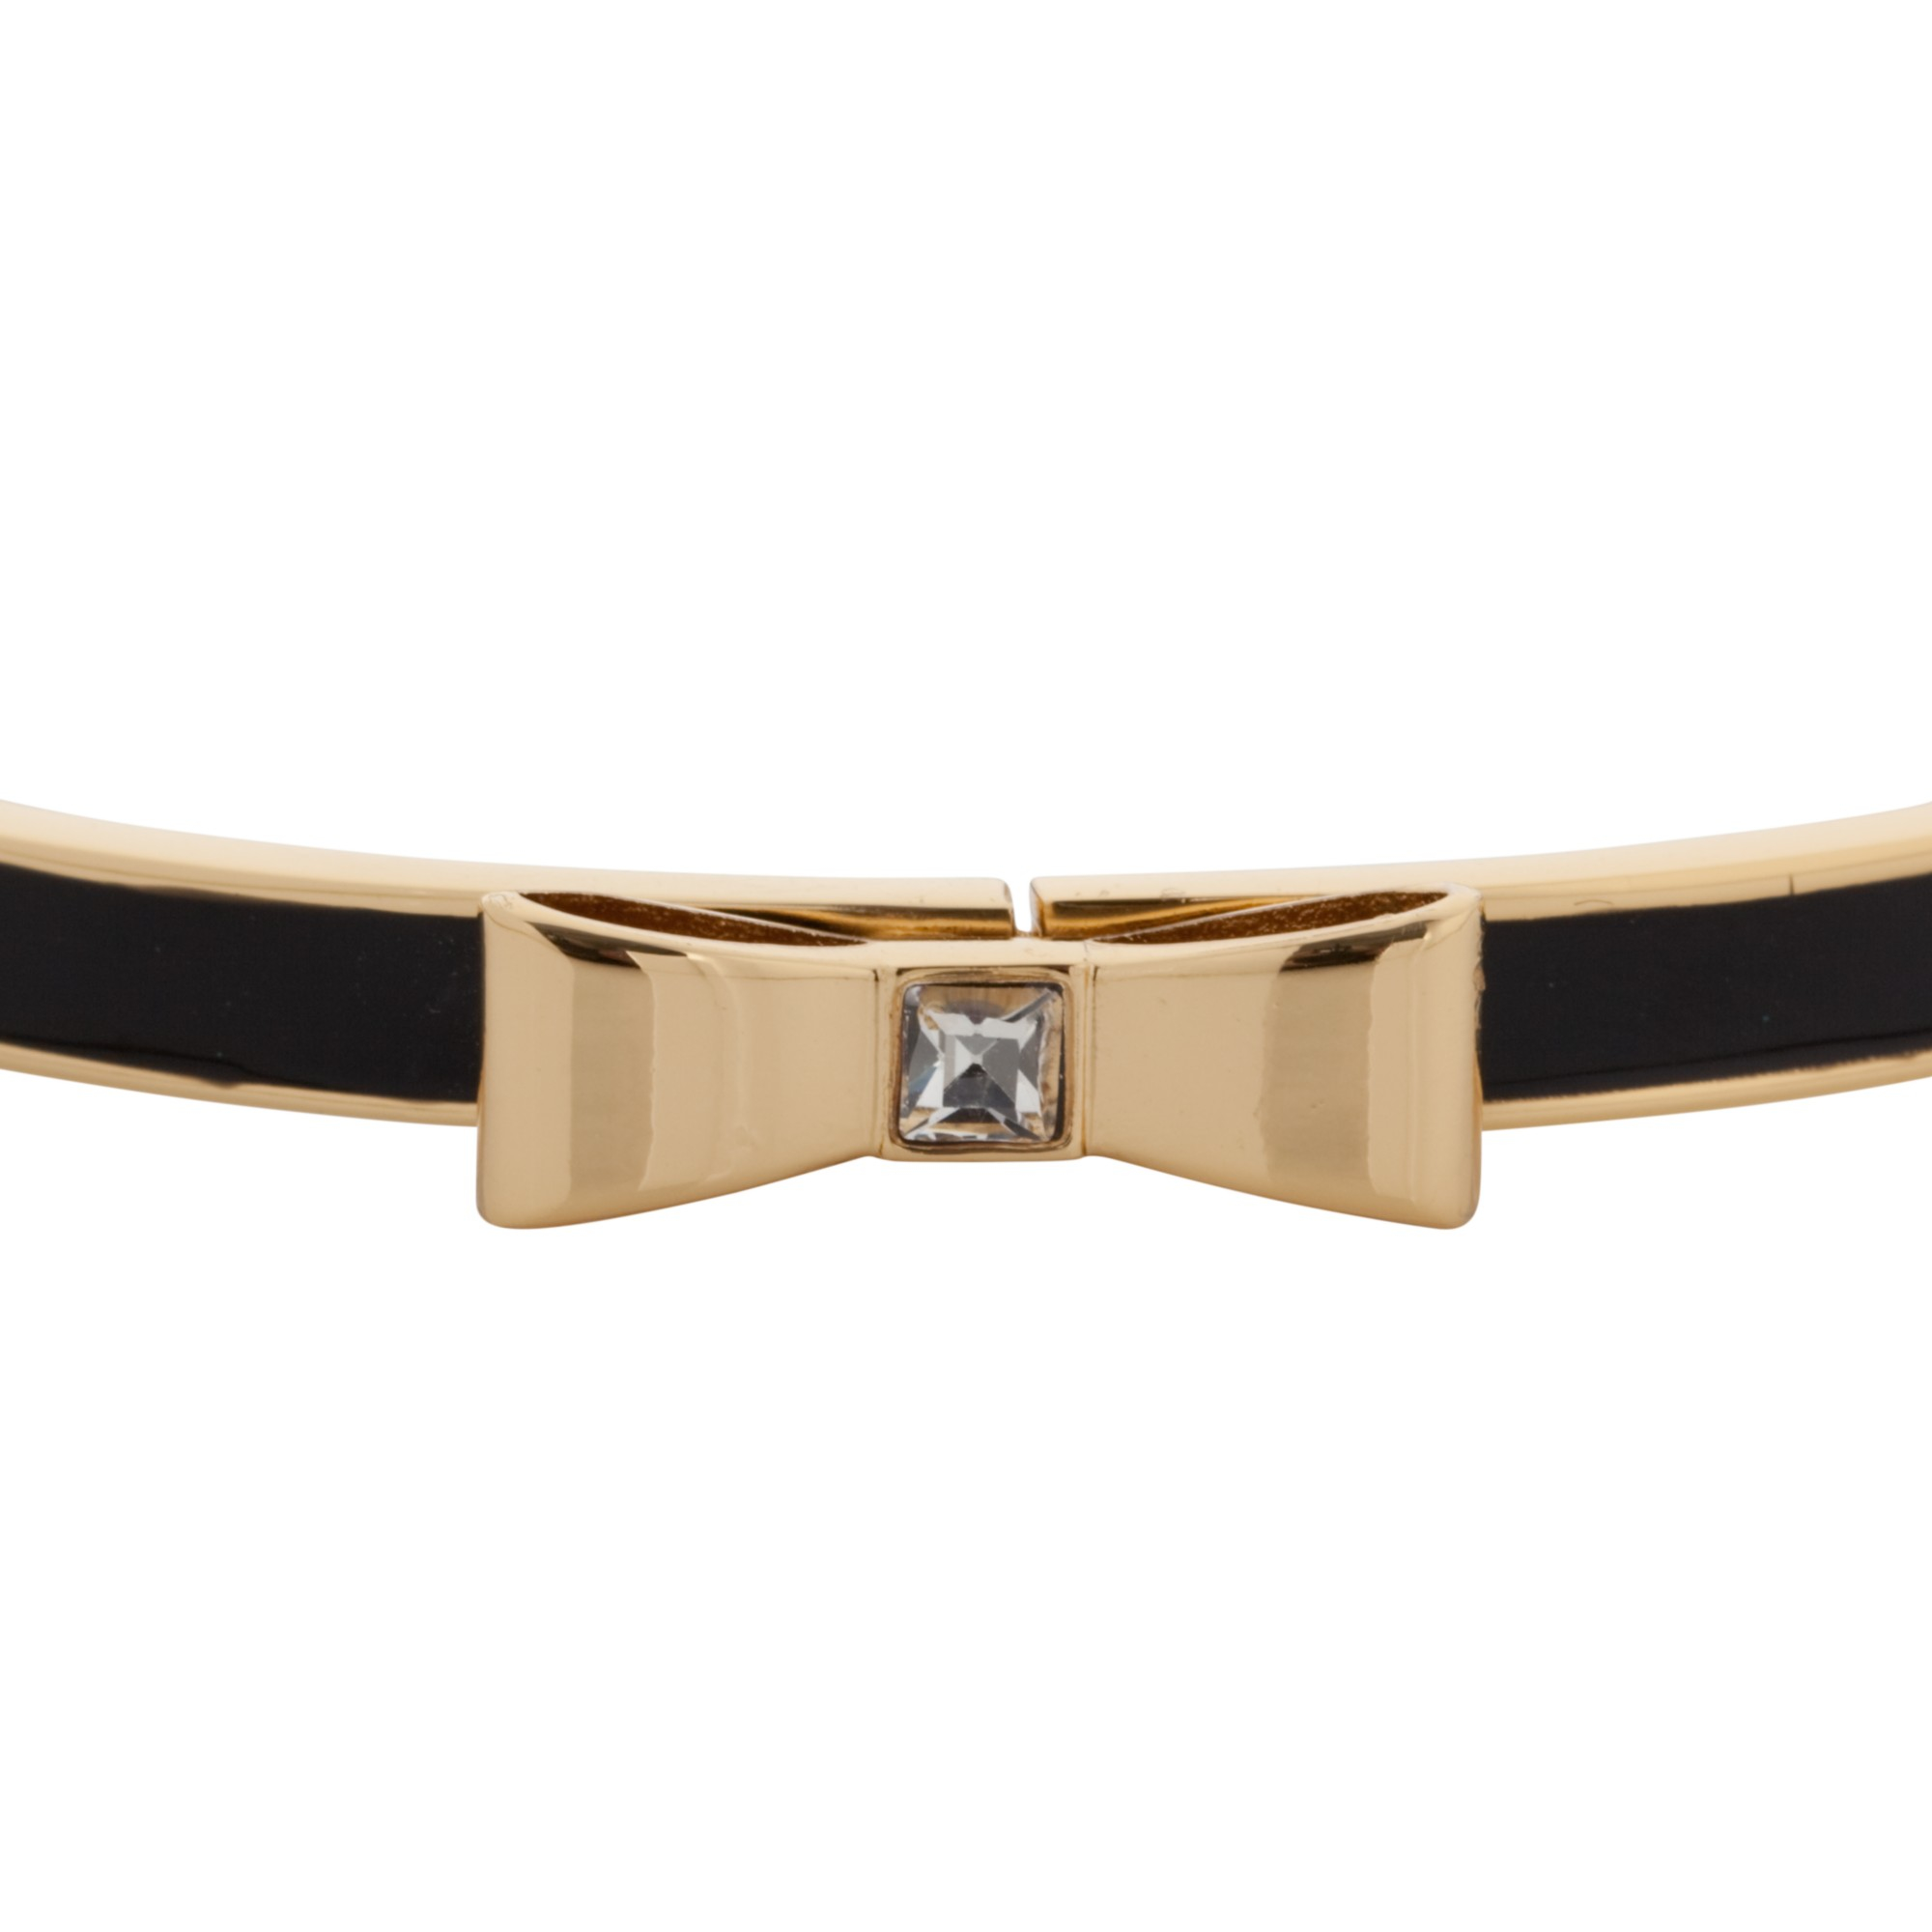 Kate Spade Glass And Enamel Hinged Bow Bangle in Black/Gold (Black)